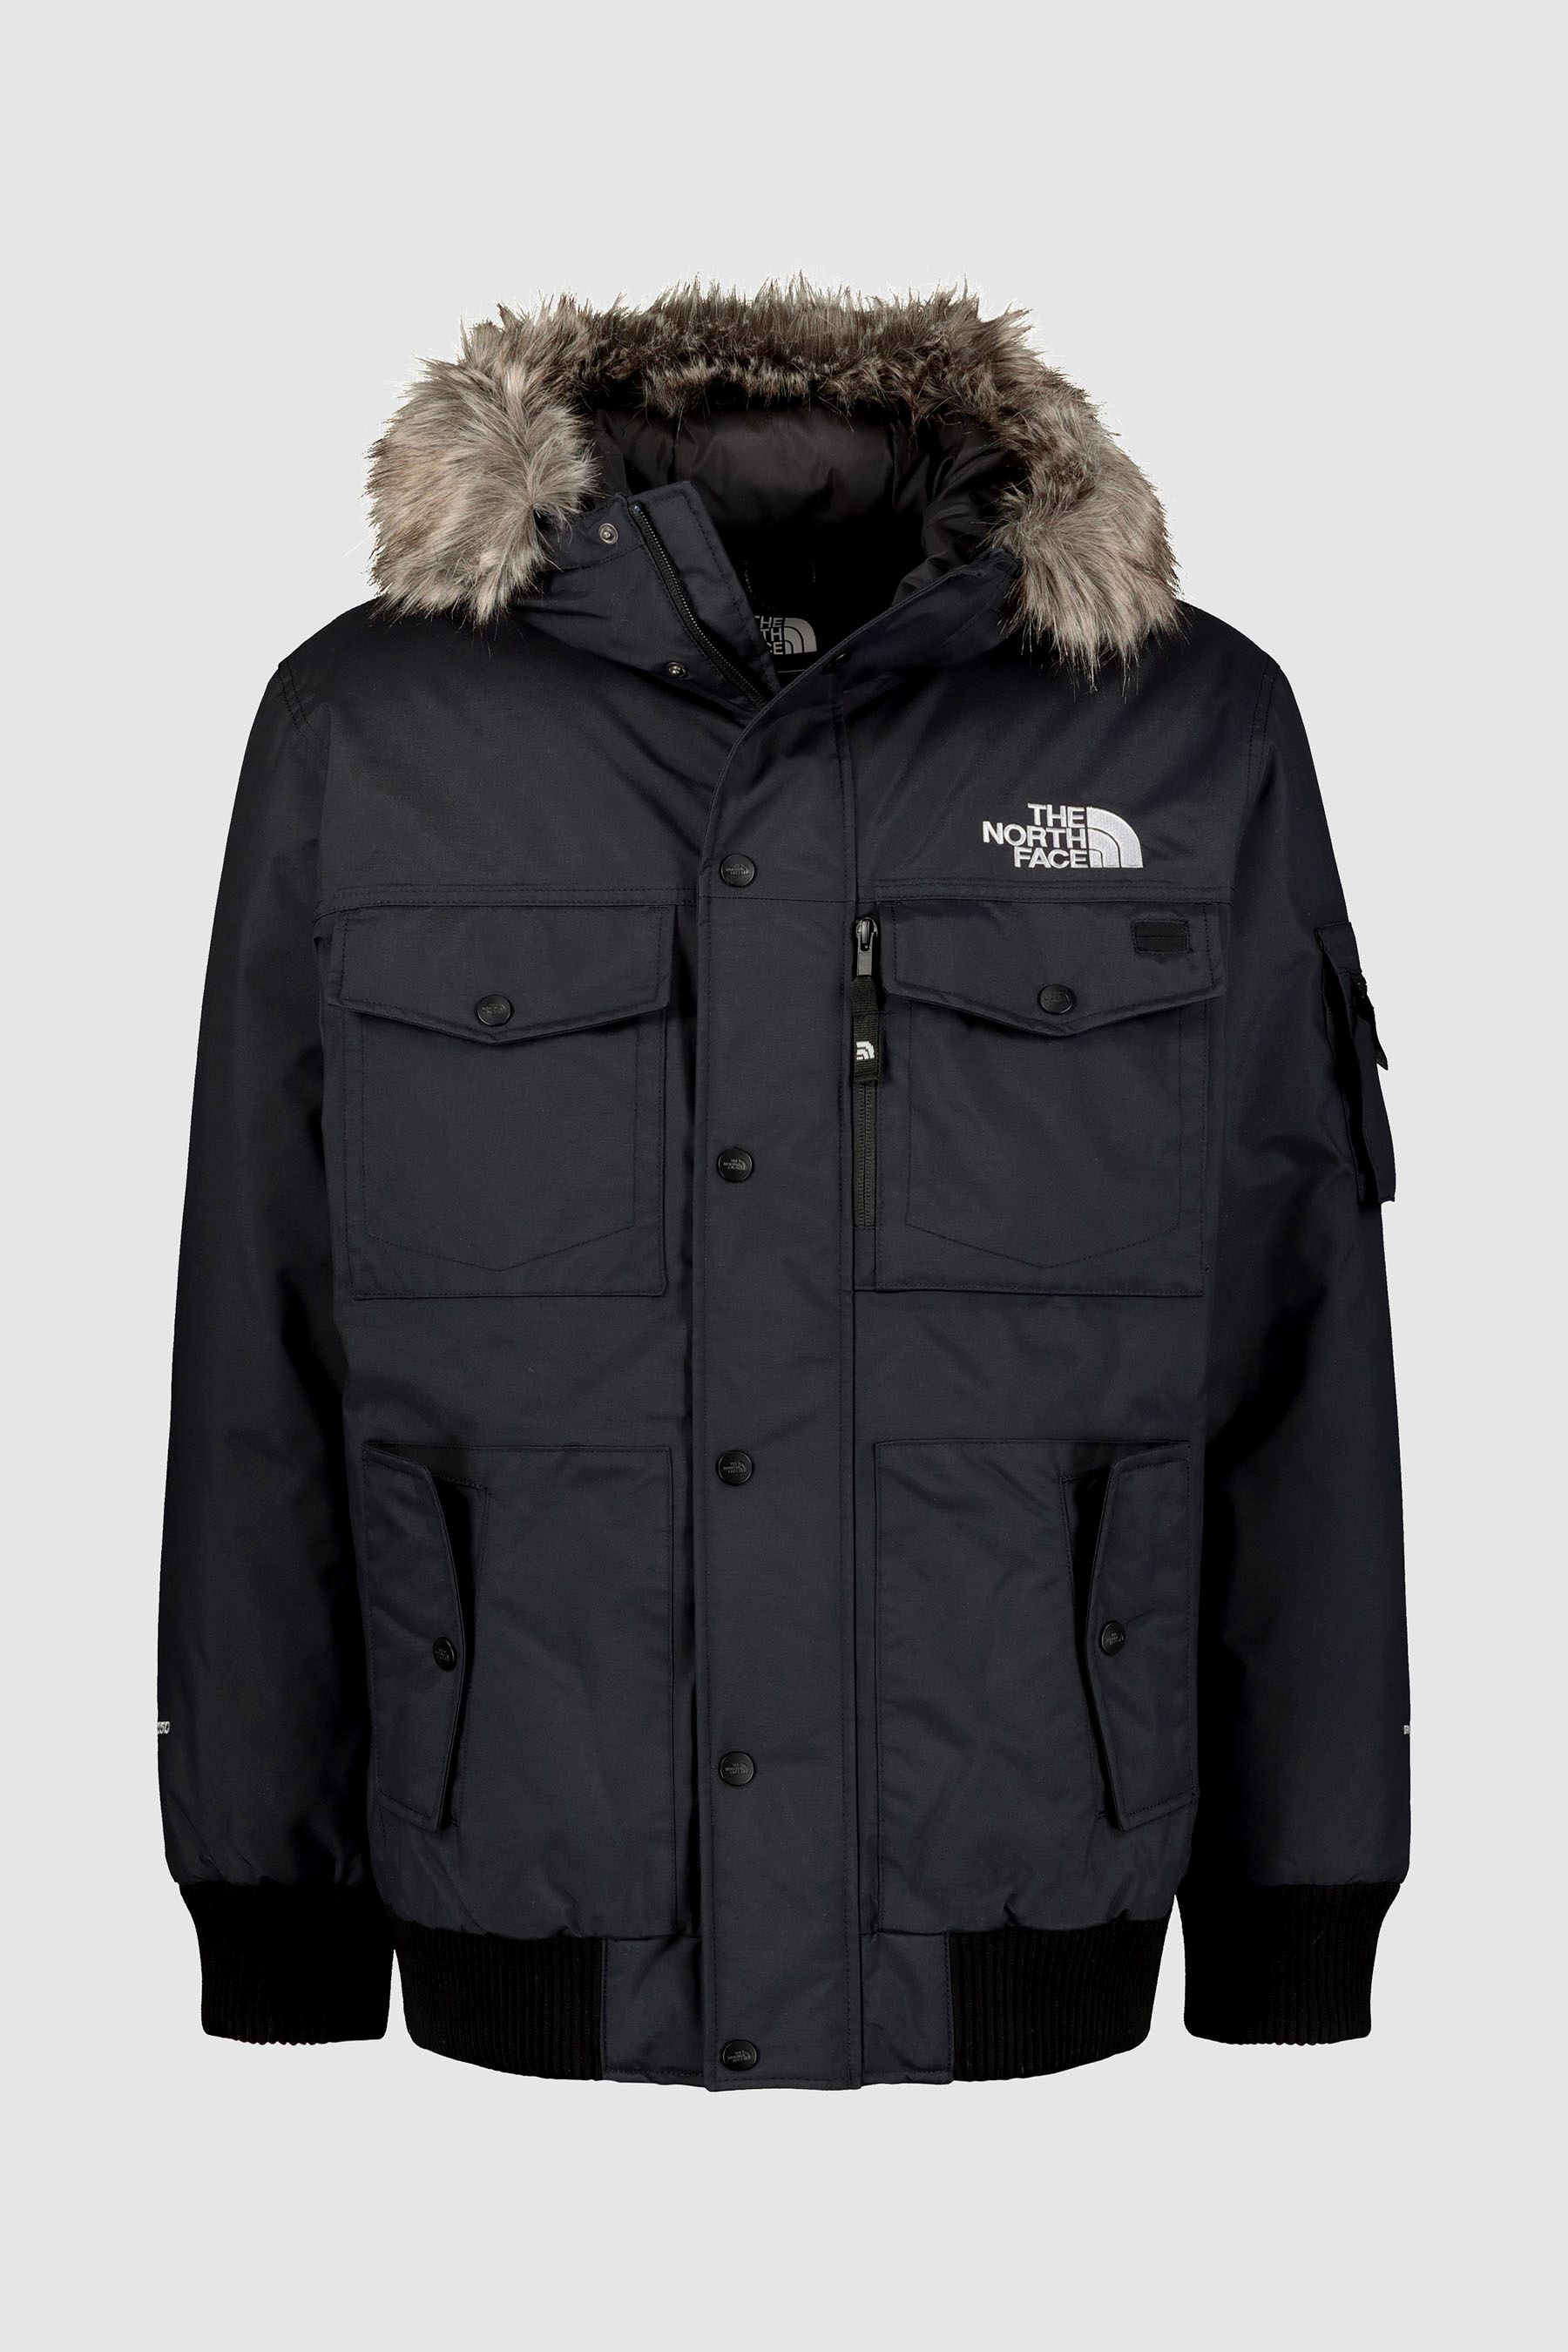 In Face Coat Mens The North 2019 Gotham BlackJackets 2HED9I